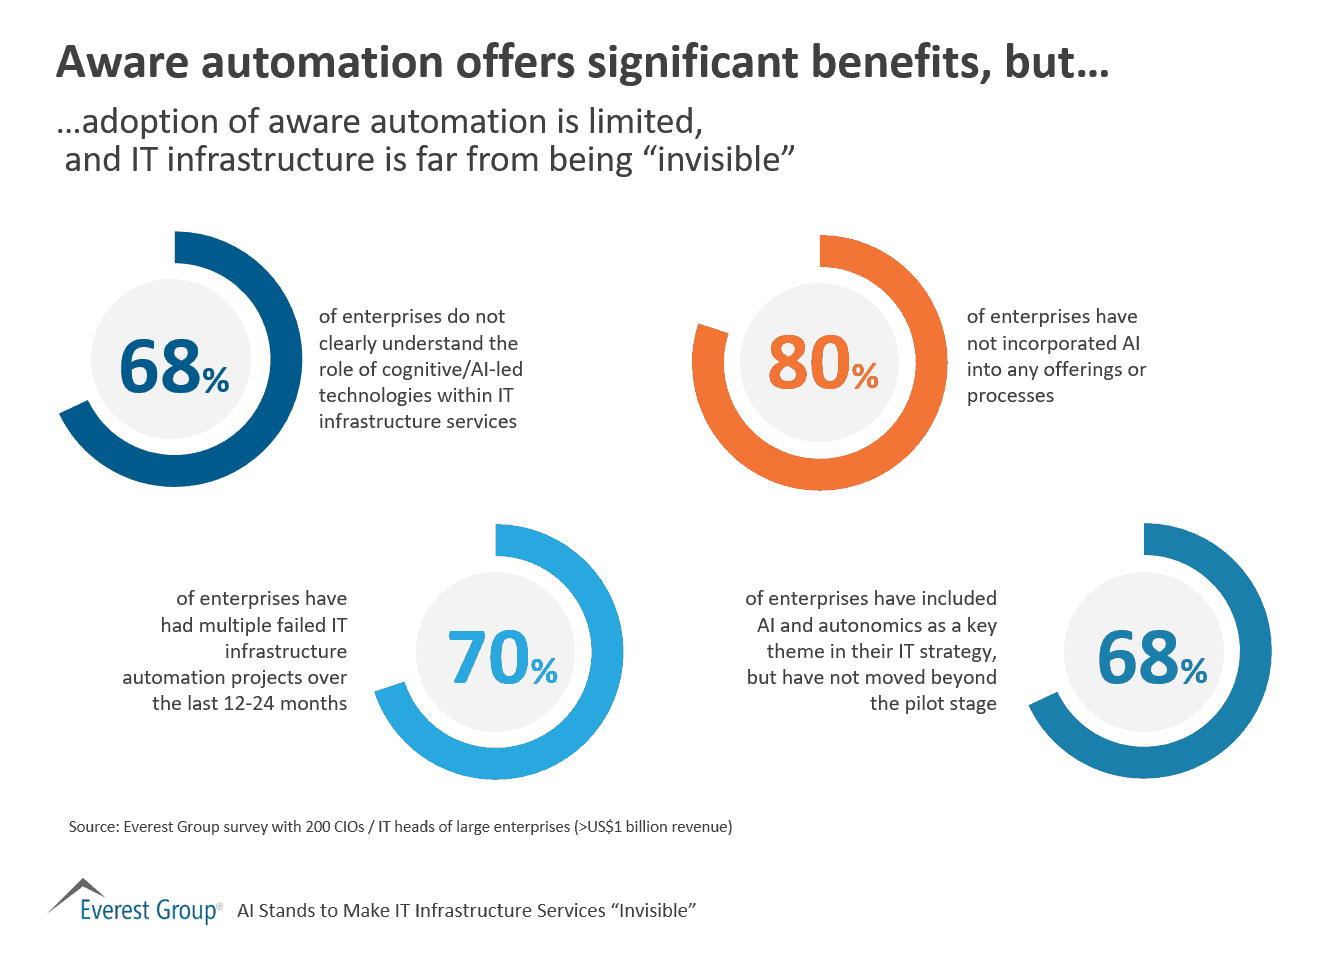 Aware automation offers significant benefits